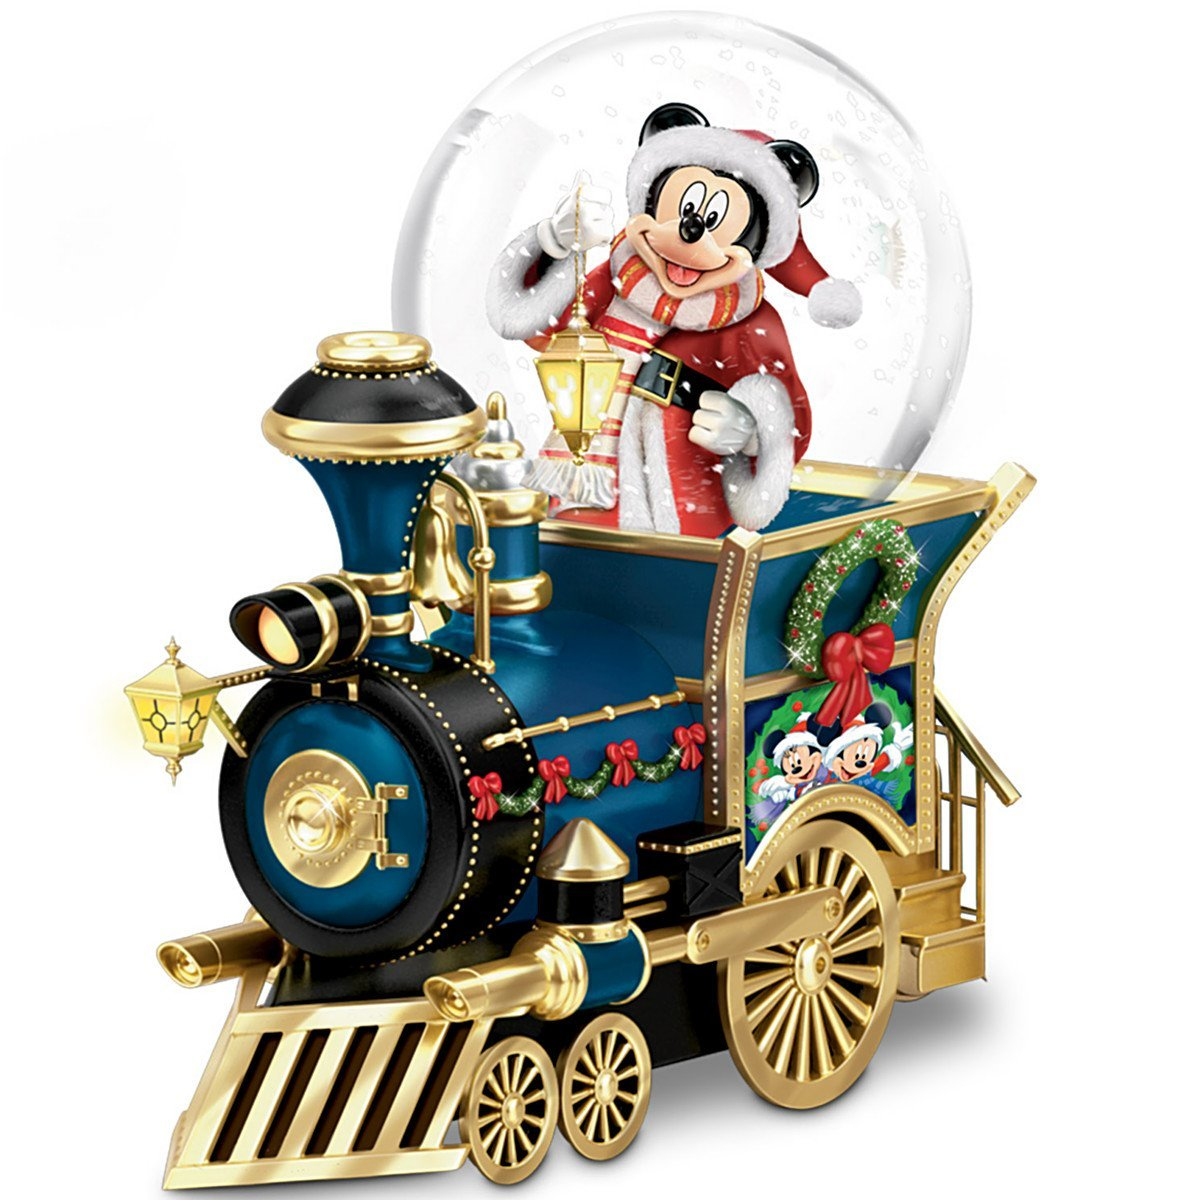 Collectible Disney Snow Globes & Water Globes